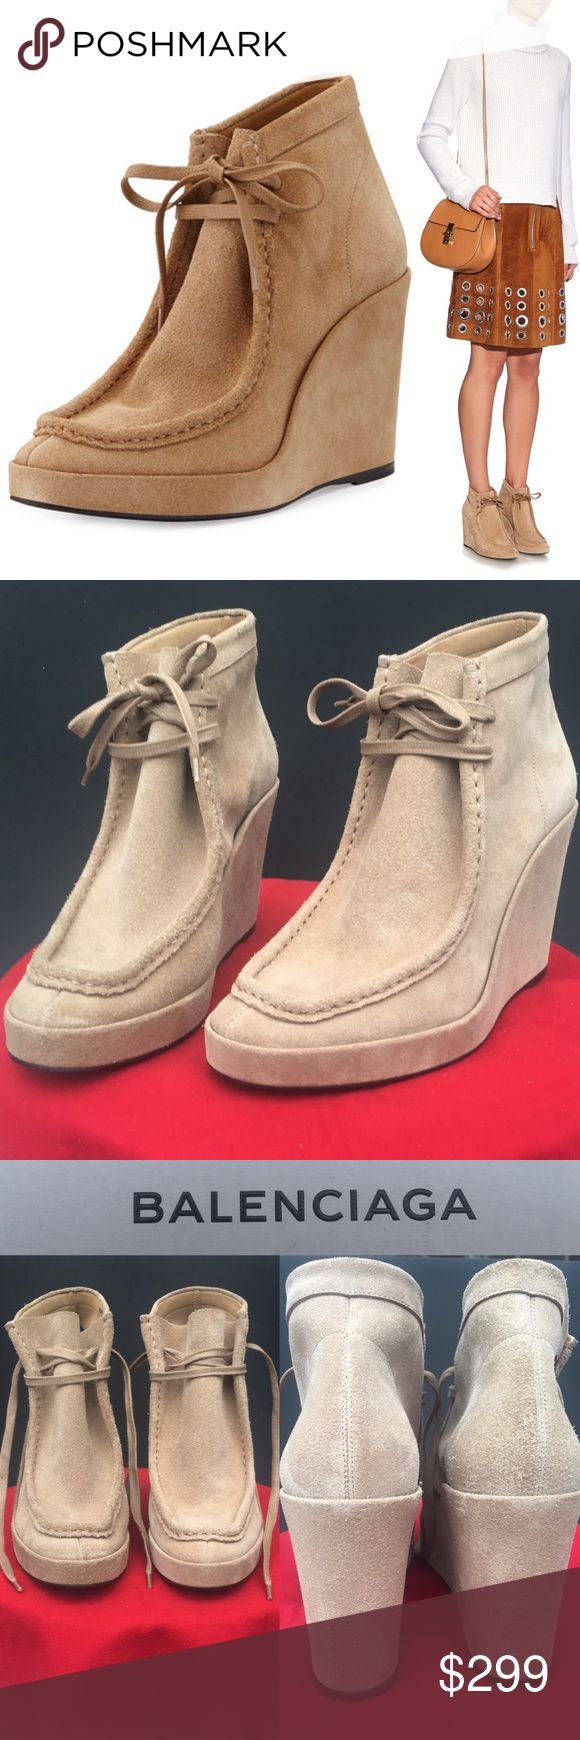 "BALENCIAGA Camel Chukka Suede Lace Wedge Booties ❤ ❤BALENCIAGA❤ Sold Out Camel Chukka Suede Lace-Front Wedge Boot NIB (never worn) $965 MSRP (I paid $799 during Neimans sale) Size 40, which Poshmark equates to US10. Covered beige wedge heel, round moc toe, self-tie front, tonal topstitching, smooth outsole, leather lining/soles, made in Italy🇮🇹 Pic shows 799 price written on inside of 1 bootie in marker pen. Heel H approx: 4 1/14"", Platform wedge H: 3/4"". NIB; includes orig. box+dust bag…"